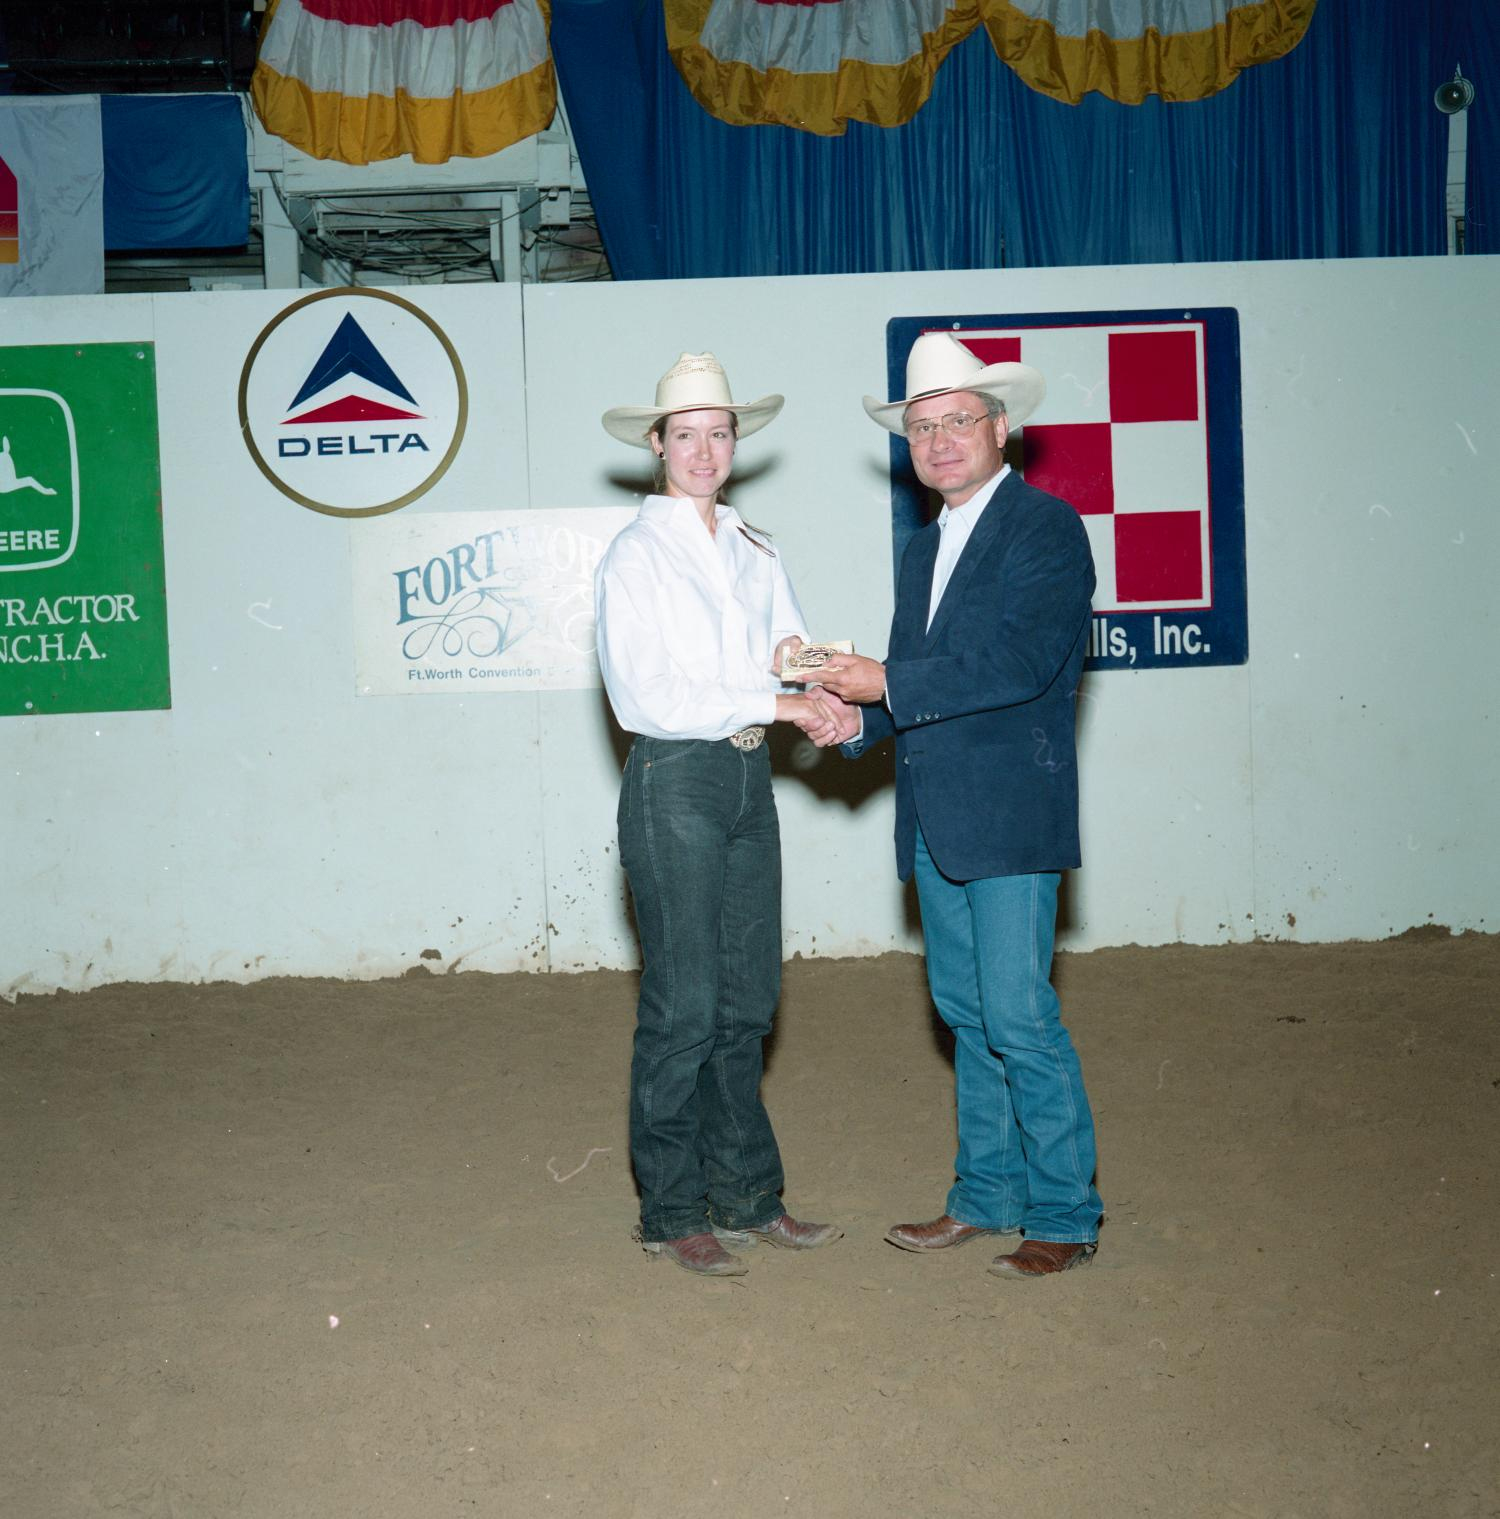 Cutting Horse Competition: Image 1991_D-140_06                                                                                                      [Sequence #]: 1 of 1